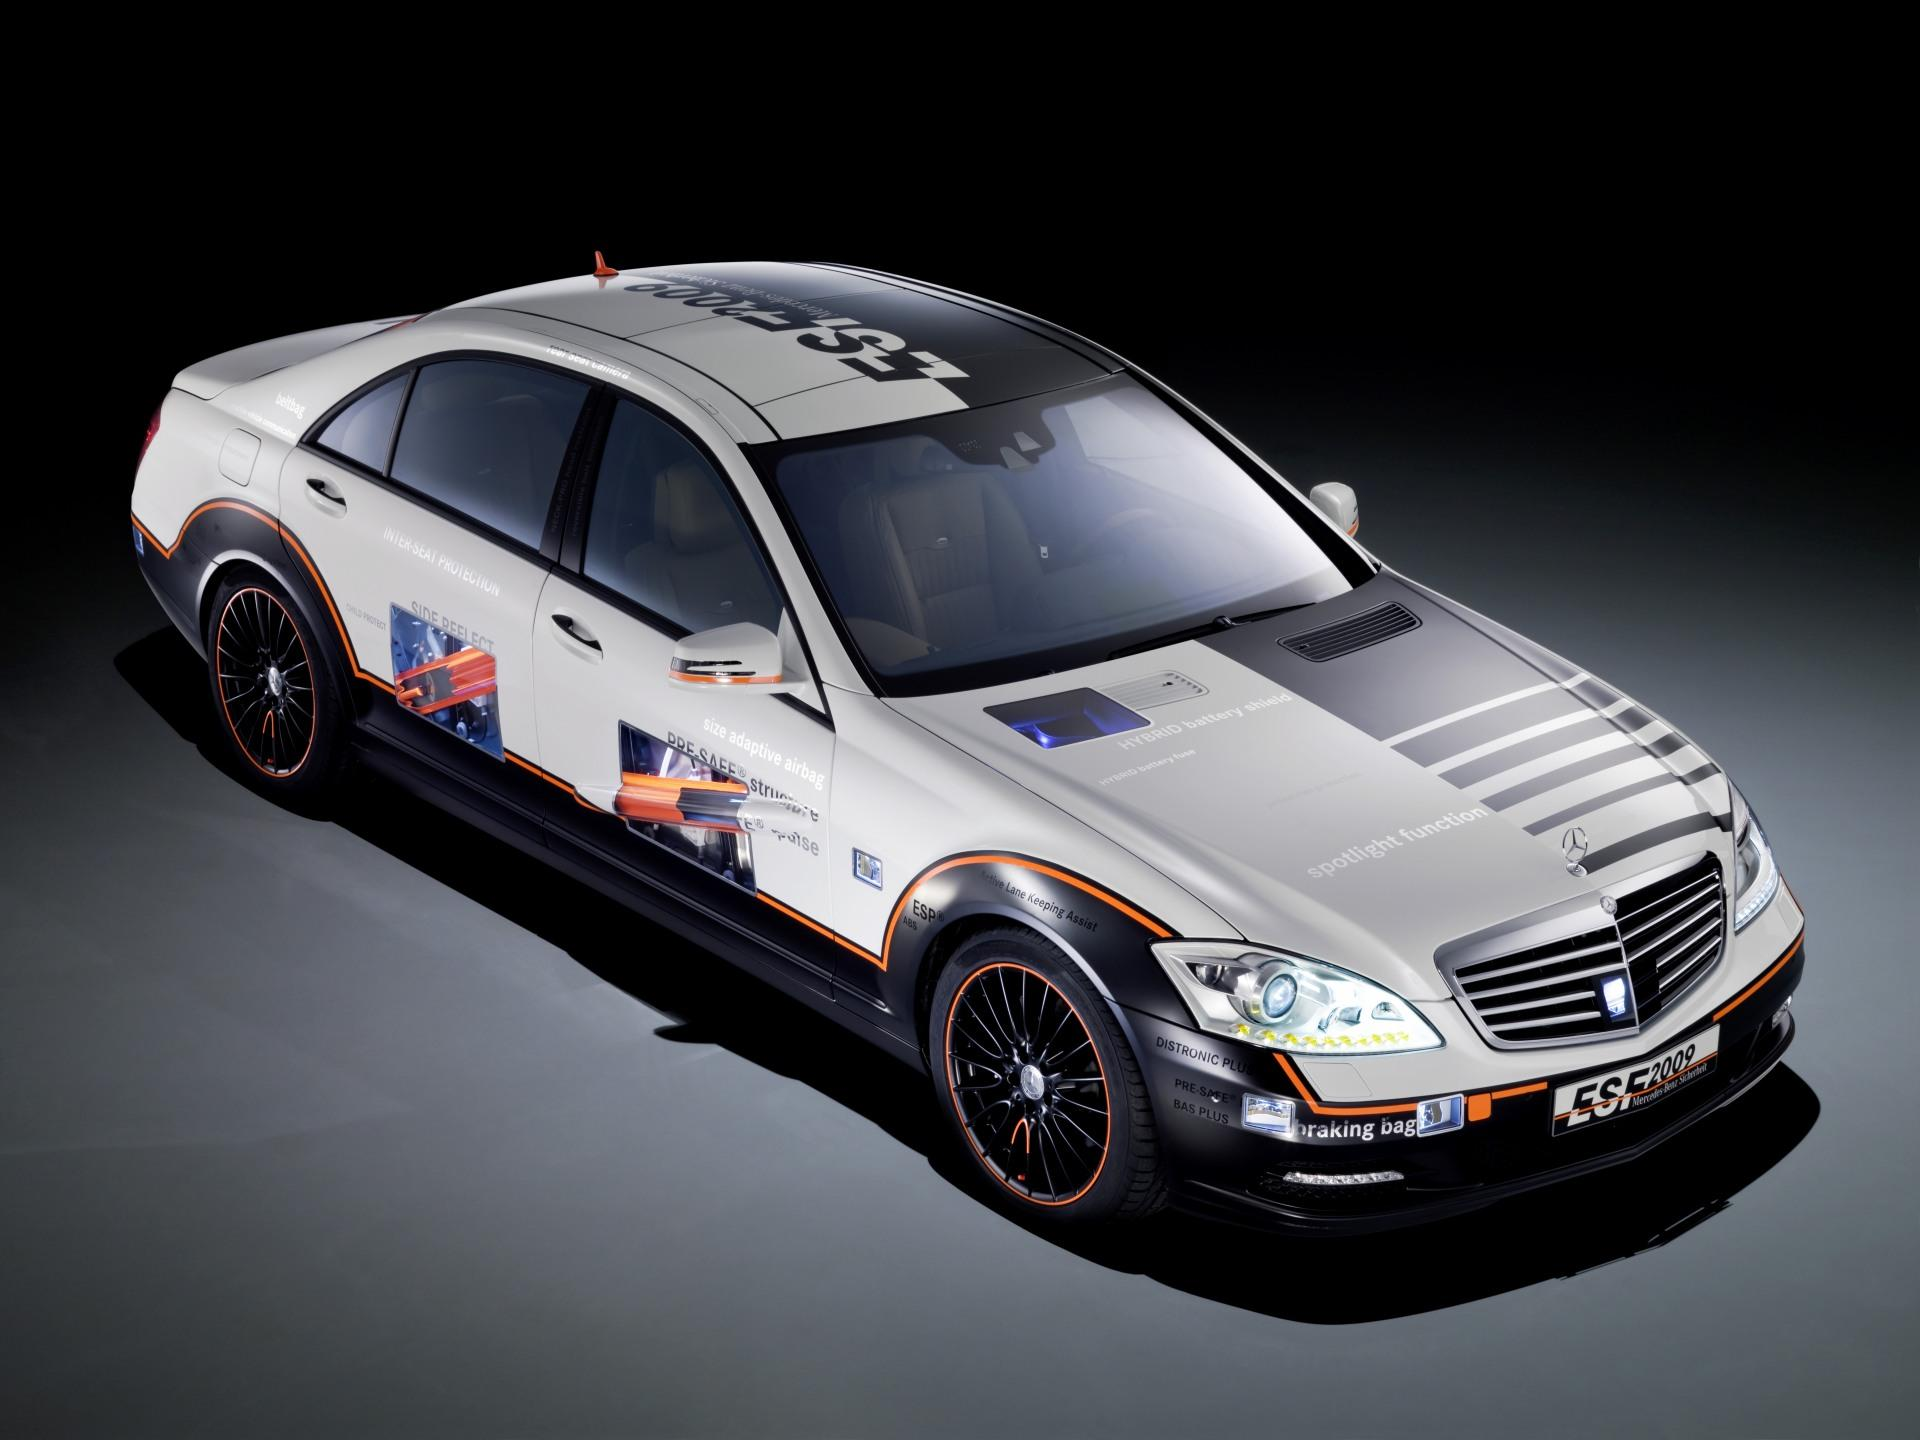 2010 Mercedes Benz Esf Safety Vehicle News And Information